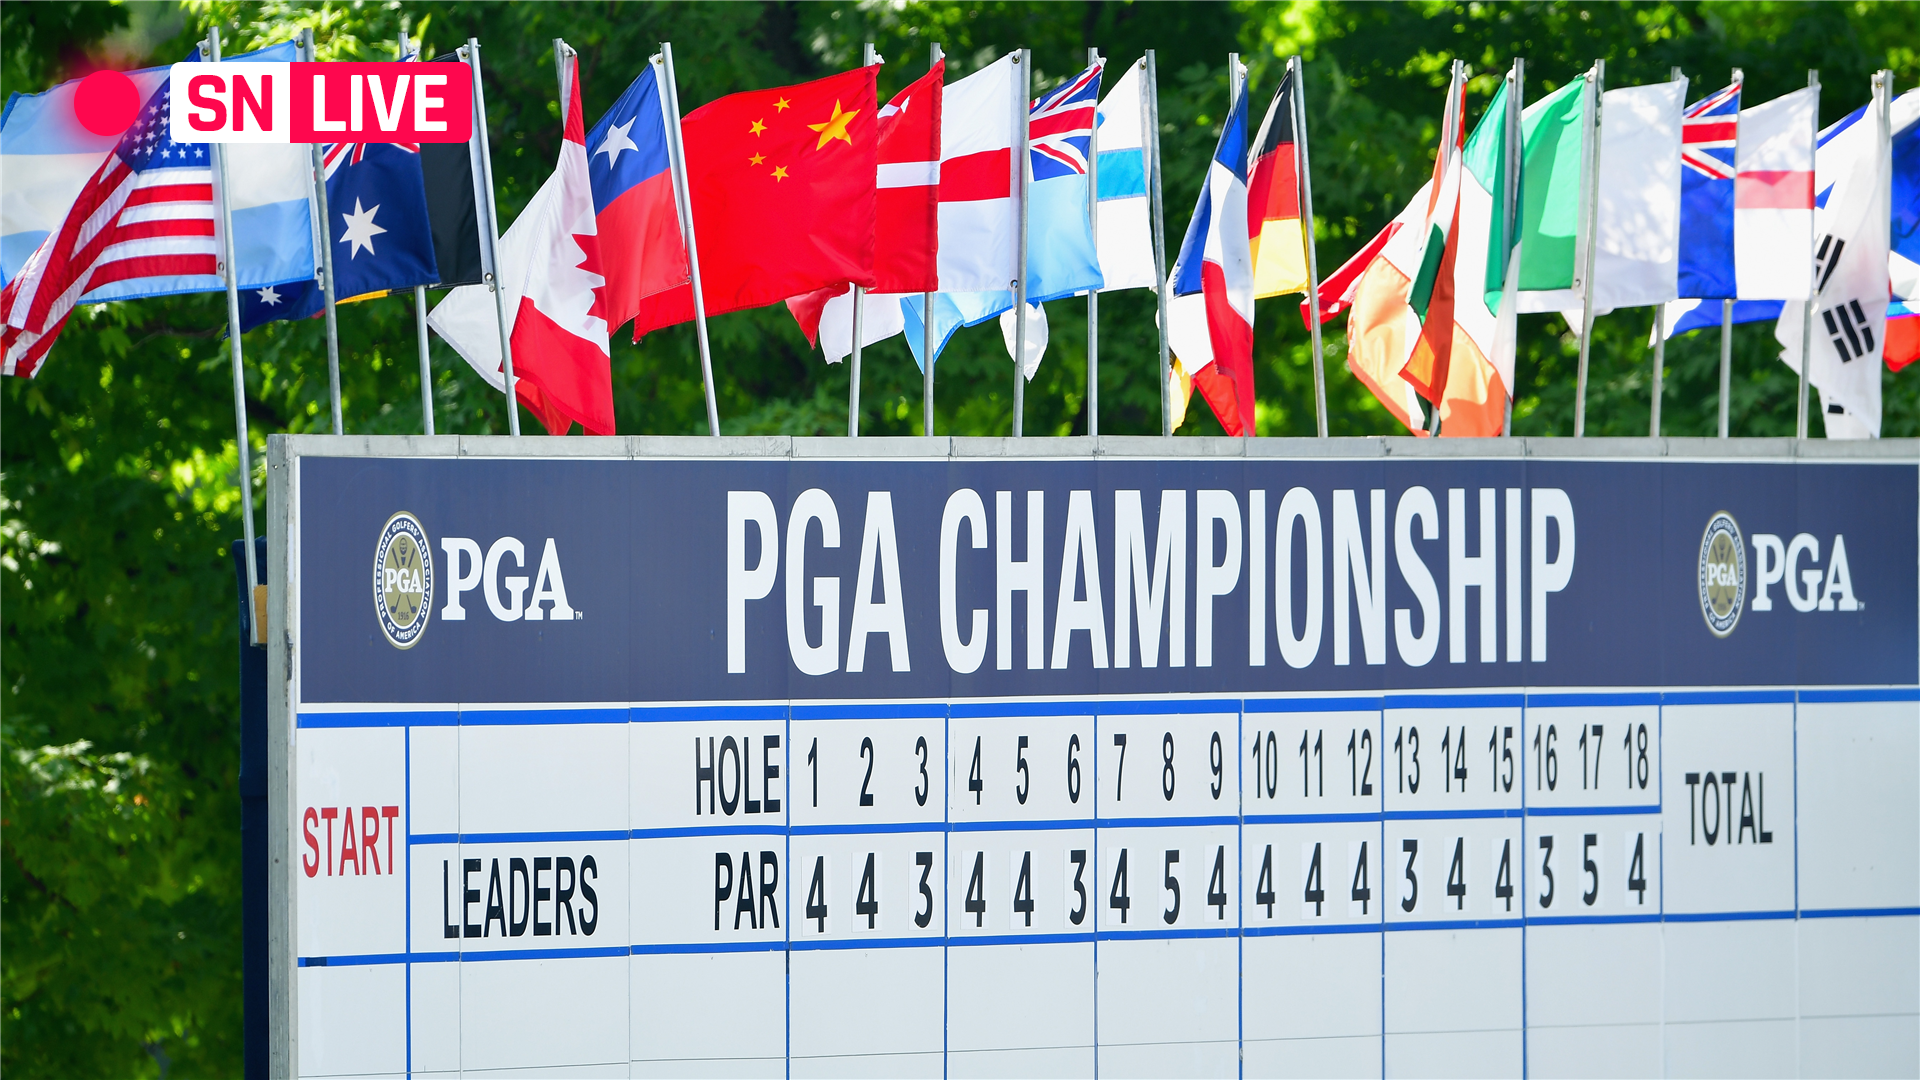 PGA Championship leaderboard: Live golf scores, results from